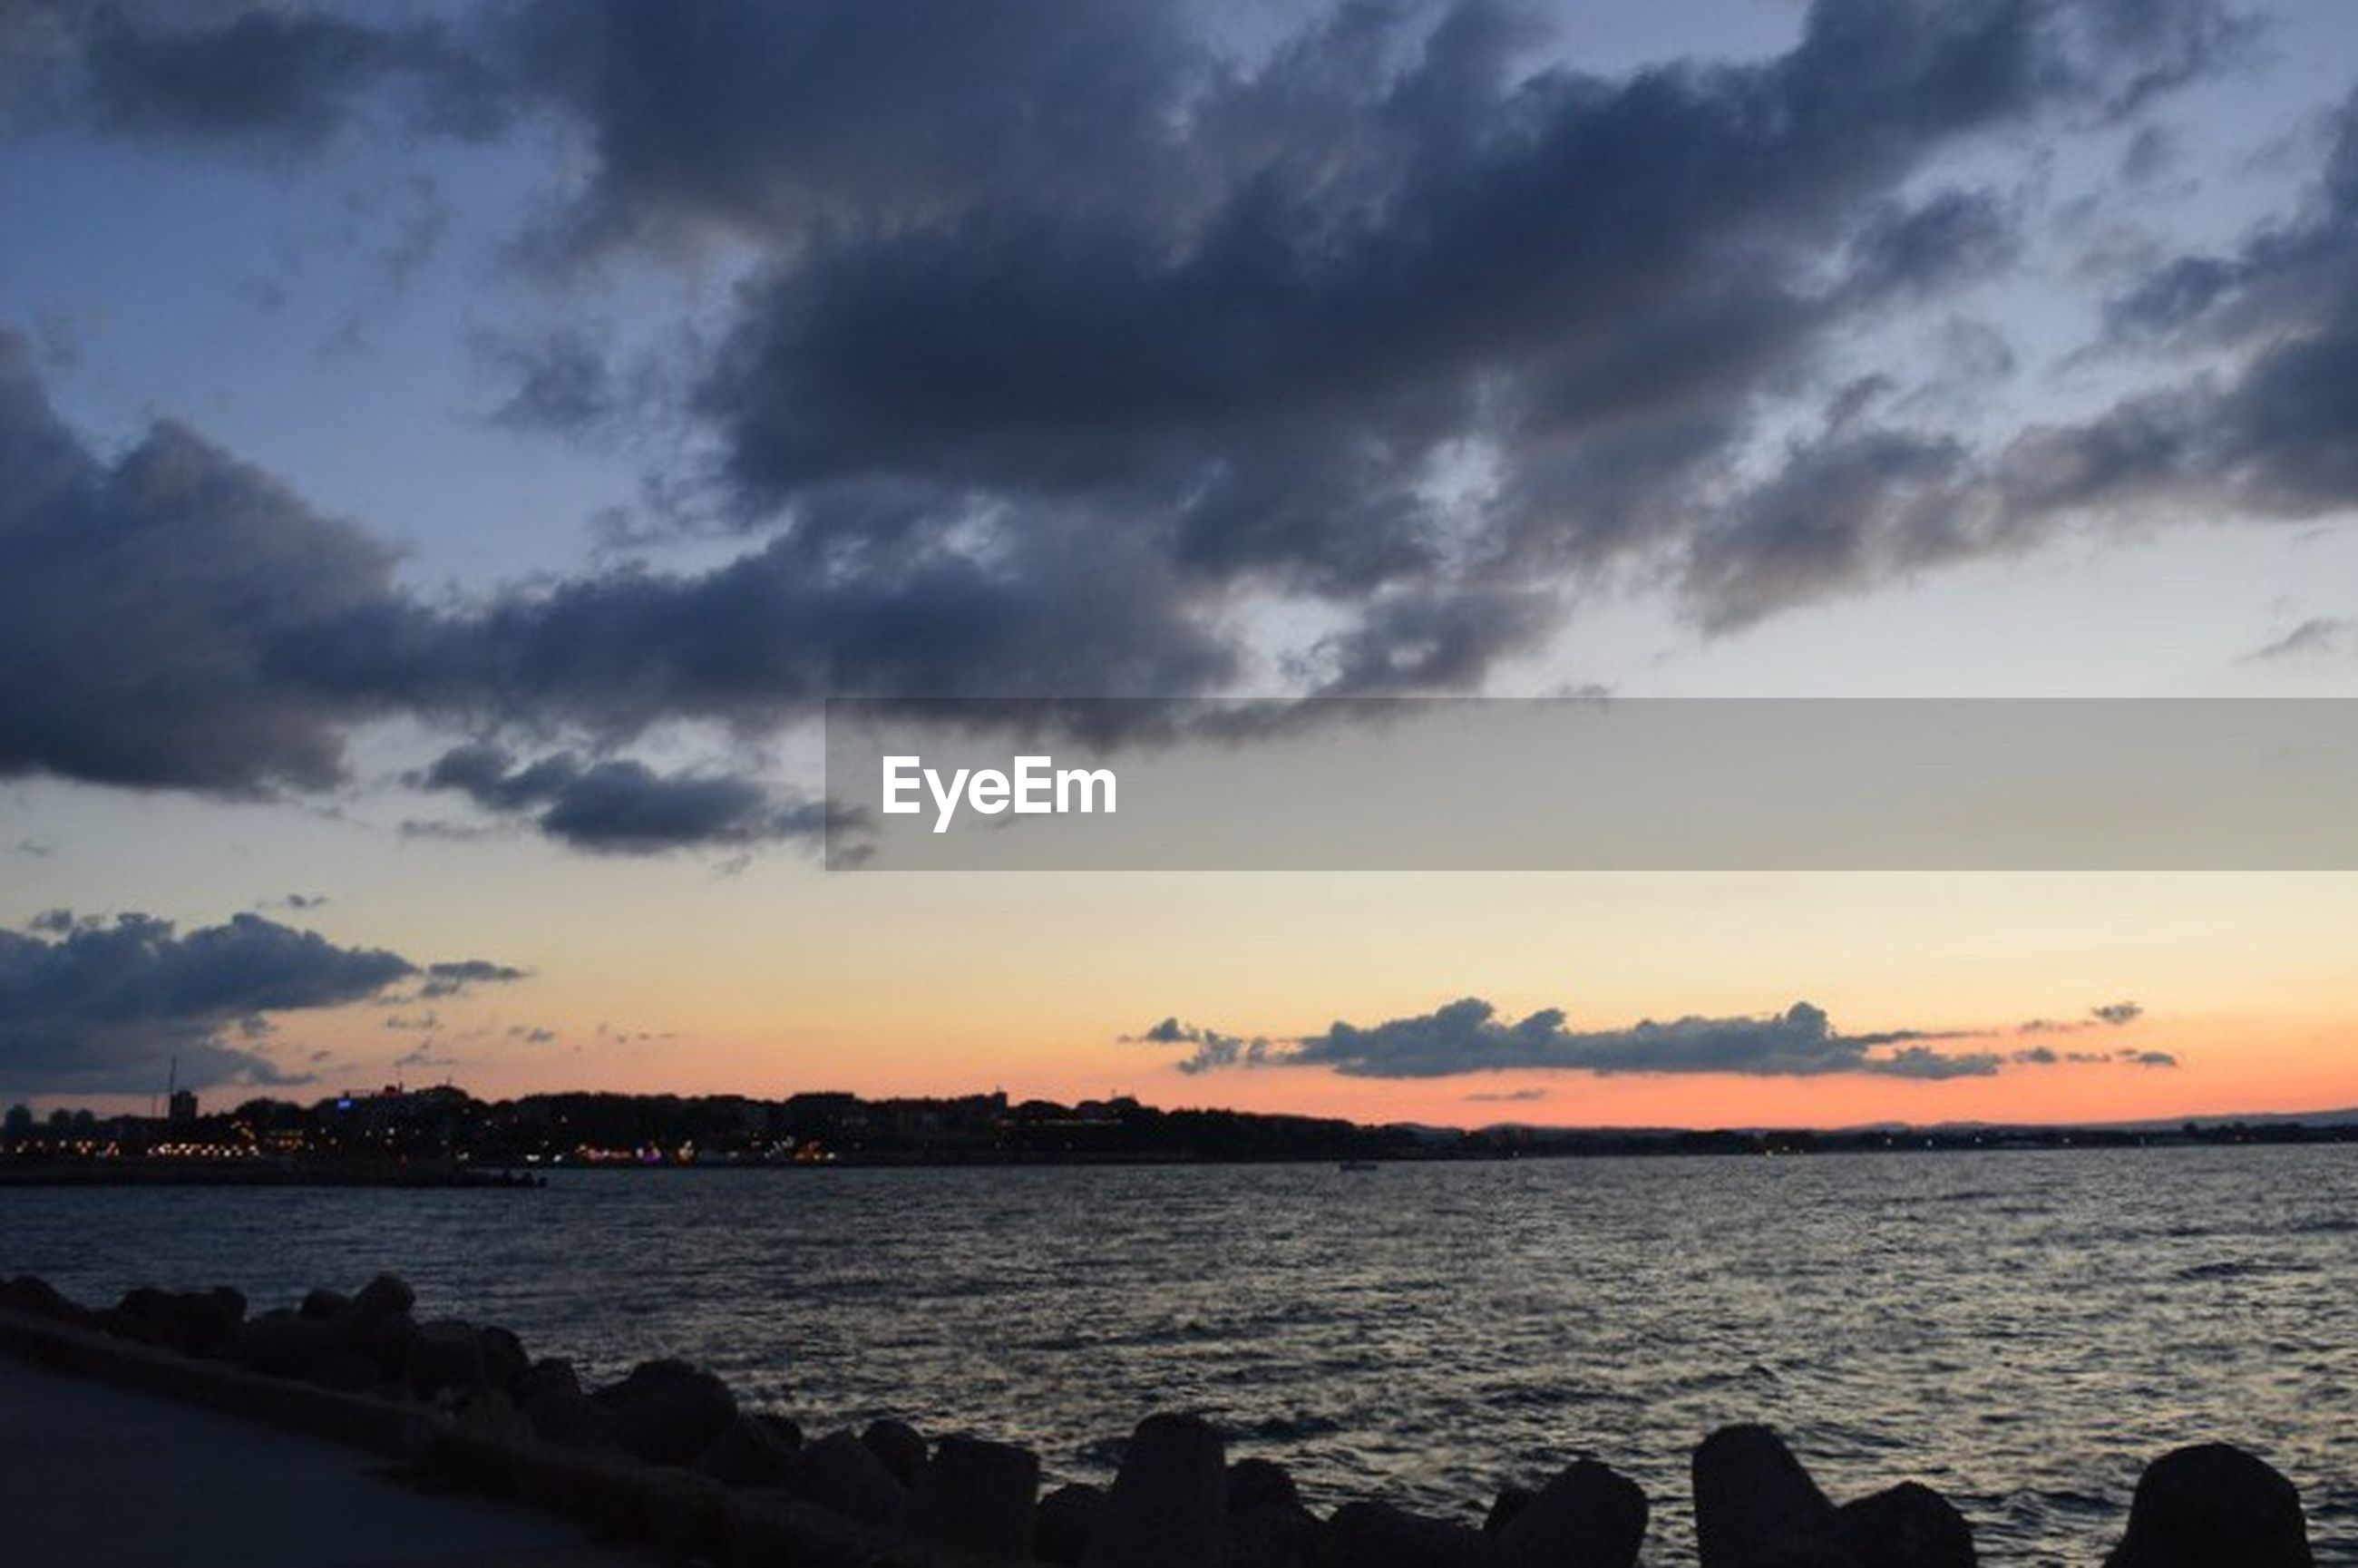 water, sea, sky, sunset, scenics, cloud - sky, beauty in nature, tranquil scene, tranquility, nature, horizon over water, cloudy, idyllic, cloud, shore, outdoors, no people, calm, coastline, remote, weather, non-urban scene, ocean, overcast